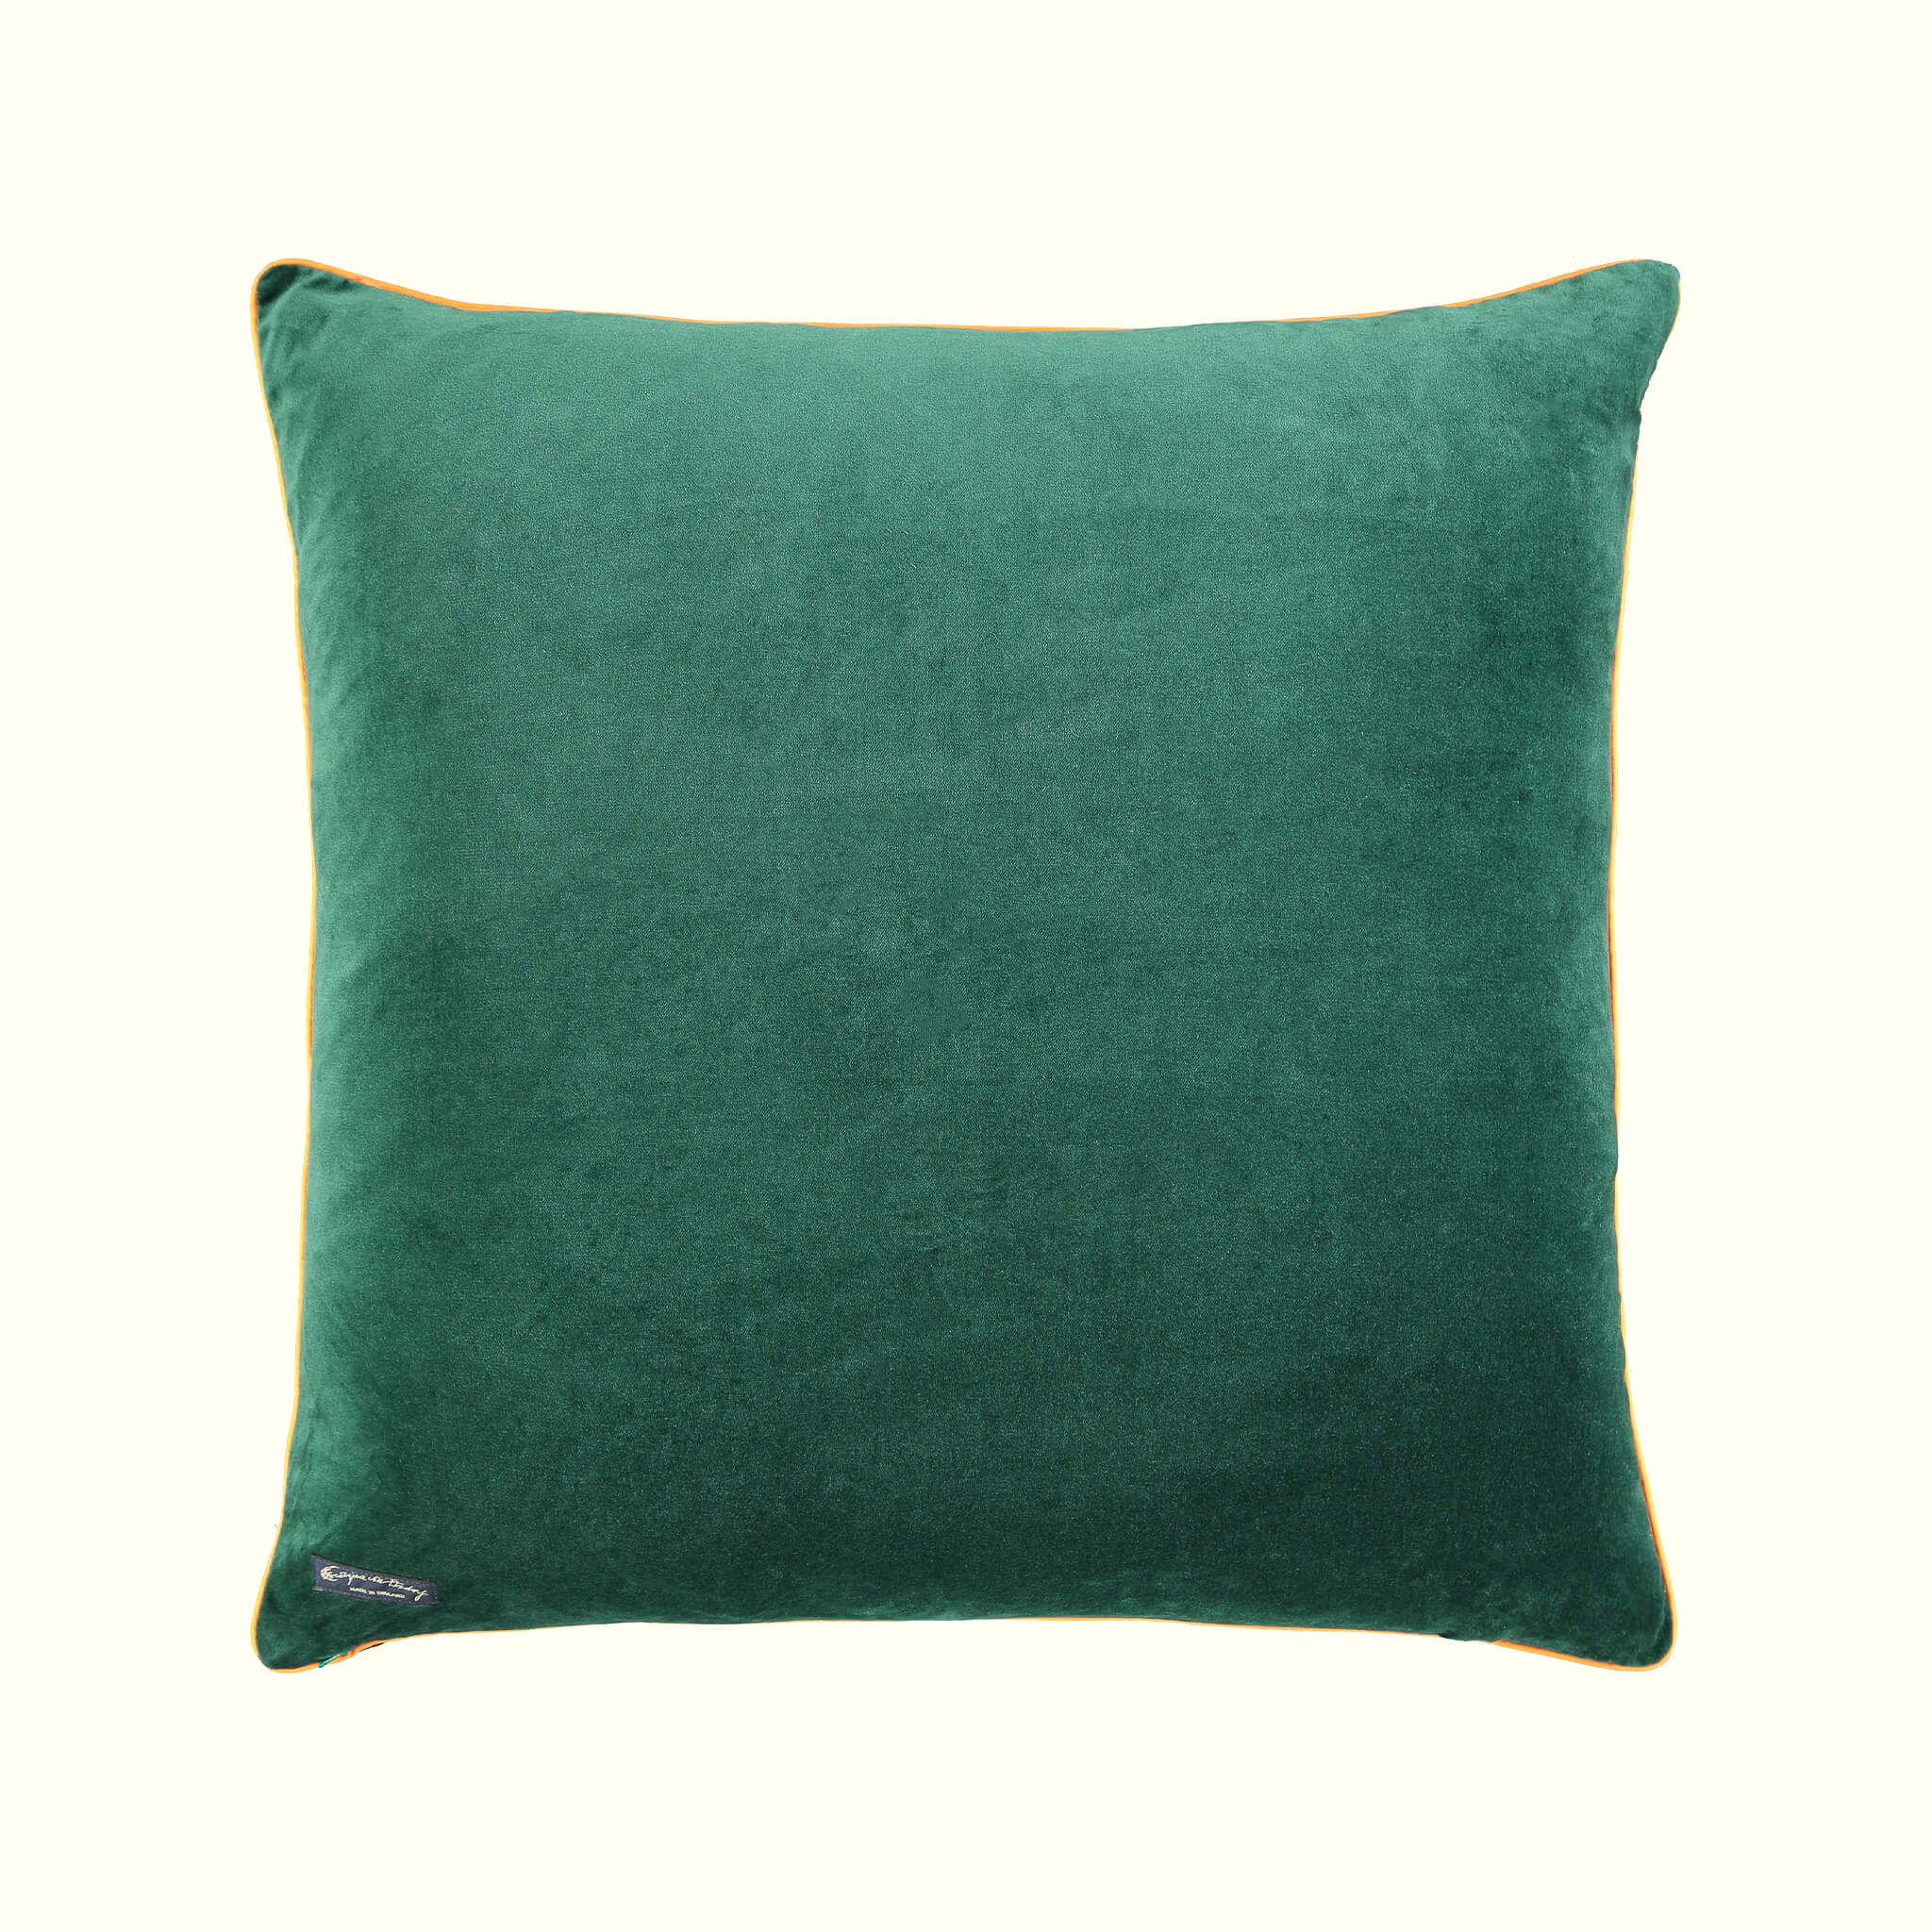 A luxury British cotton velvet cushion by GVE in olive Dune print design.